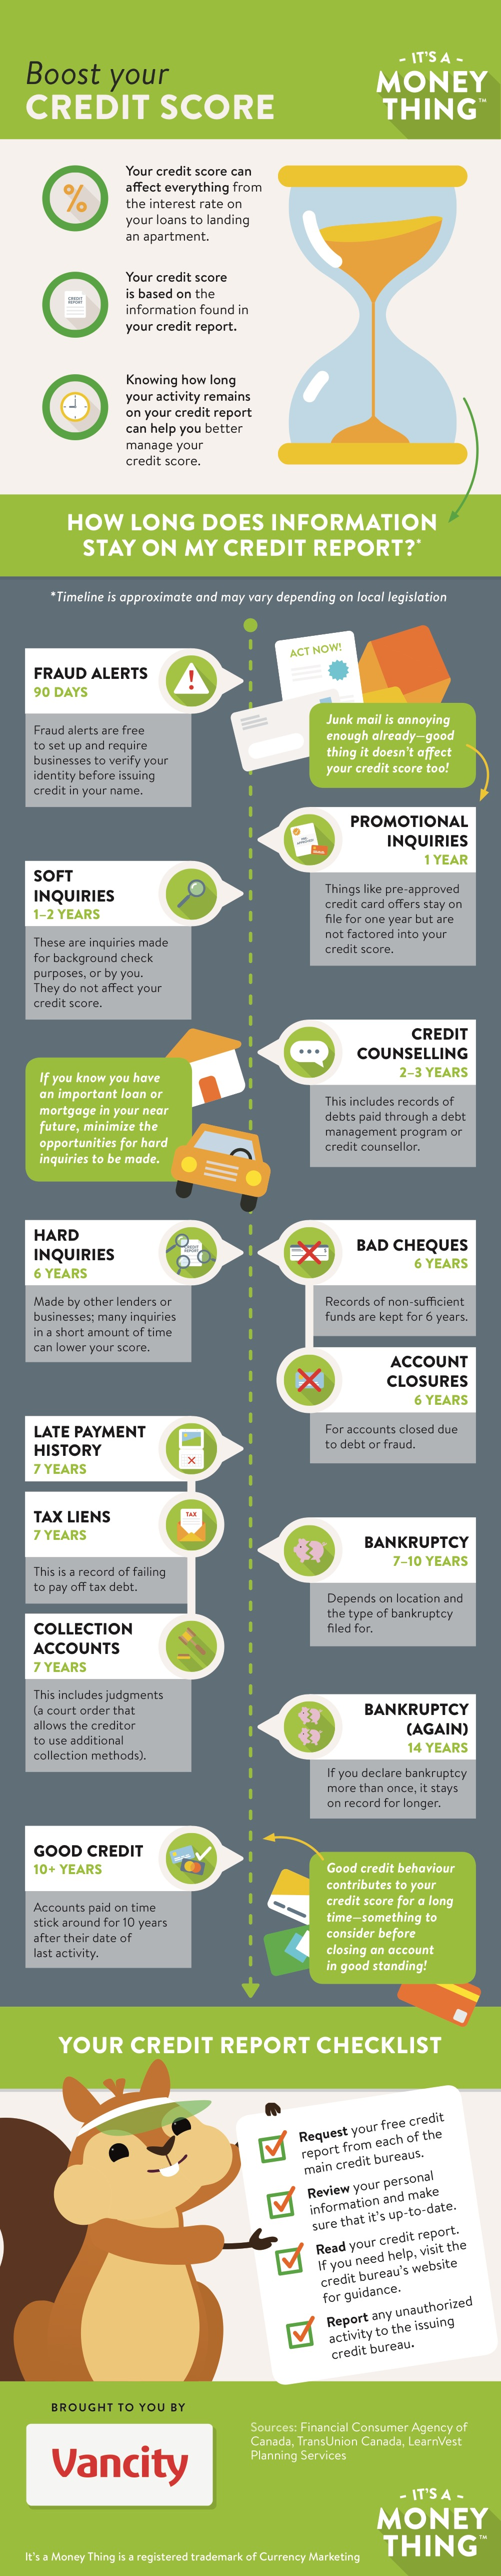 1) What your credit score means 2) 4 common credit score myths 3) 7 ways to boost your credit score 4) How to read a credit report 5) How long does info stay on your credit report